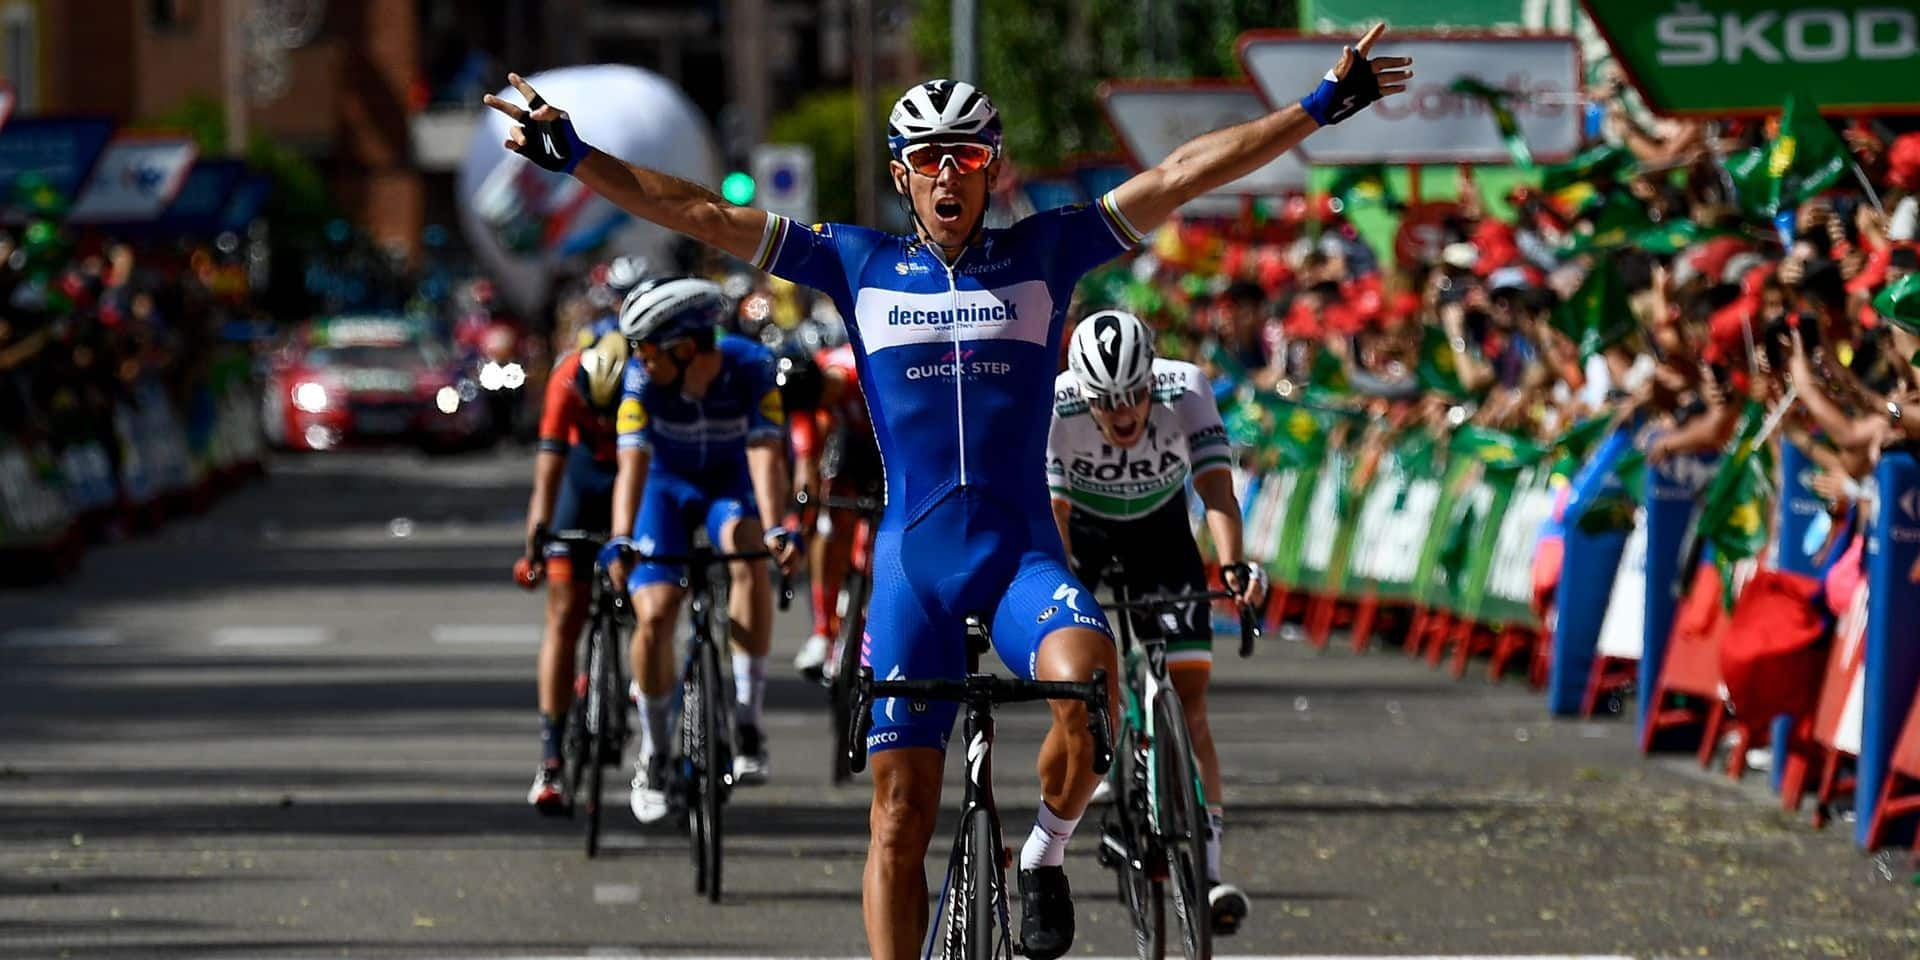 Team Deceuninck rider Belgium's Philippe Gilbert celebrates as he crosses the finish line and wins the 17th stage of the 2019 La Vuelta cycling Tour of Spain, a 219,6 km race from Aranda de Duero to Guadalajara on September 11, 2019. (Photo by OSCAR DEL POZO / AFP)